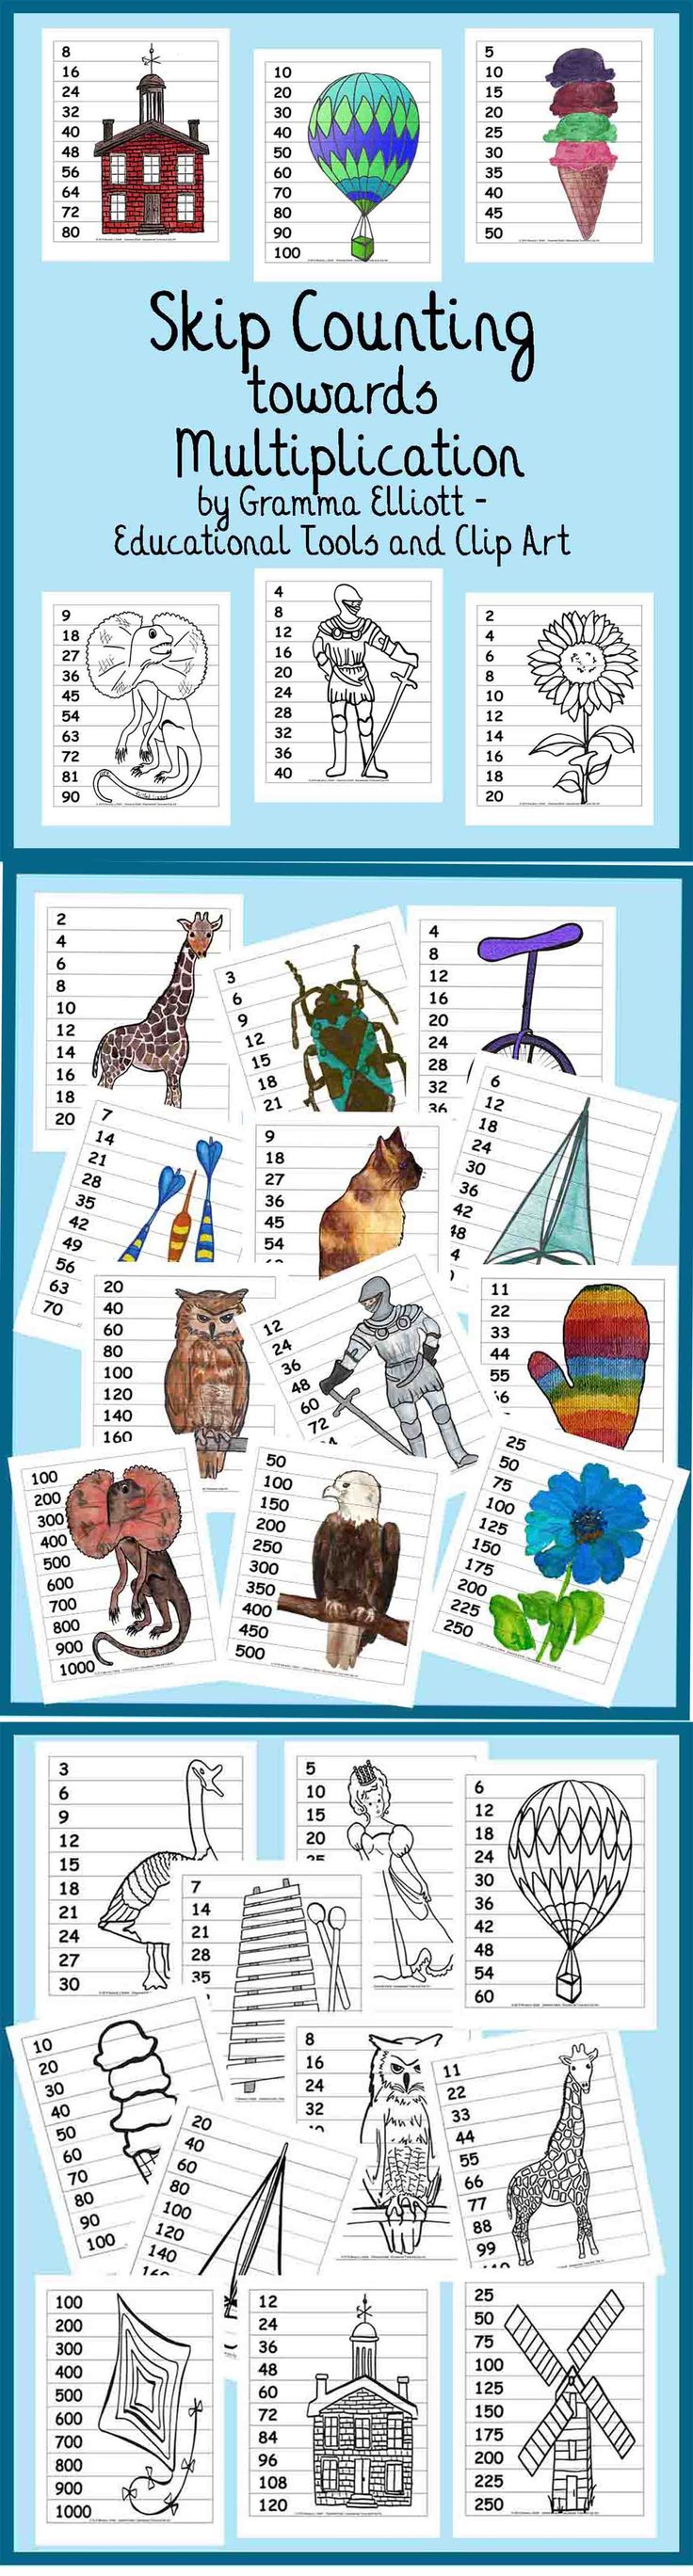 Bilingual dolphin counting card 6 clipart etc - Skip Counting Towards Multiplication Puzzle Posters Or Wipe Off Cards